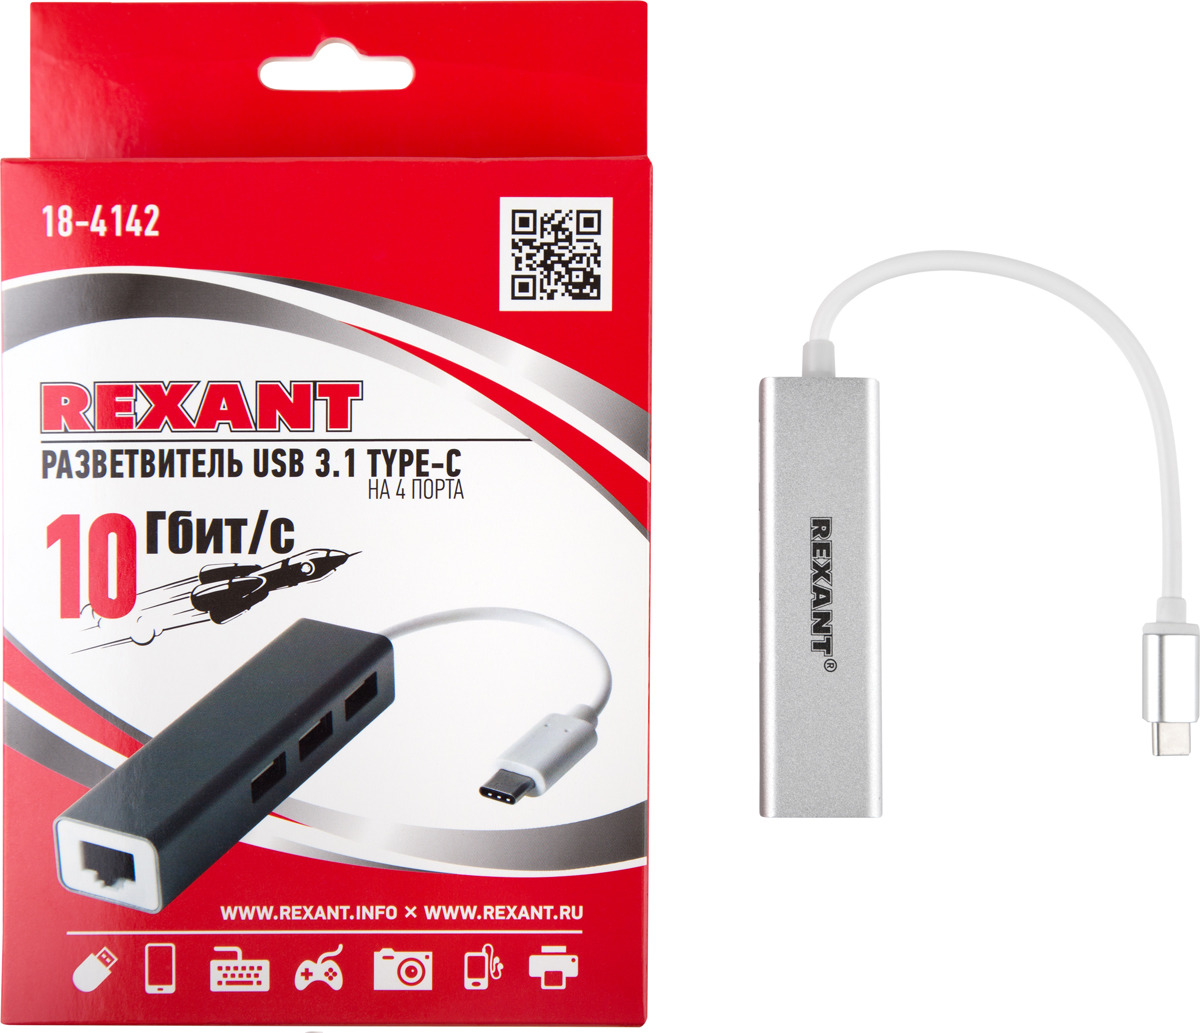 Rexant 18-4142, Silver USB-концентратор